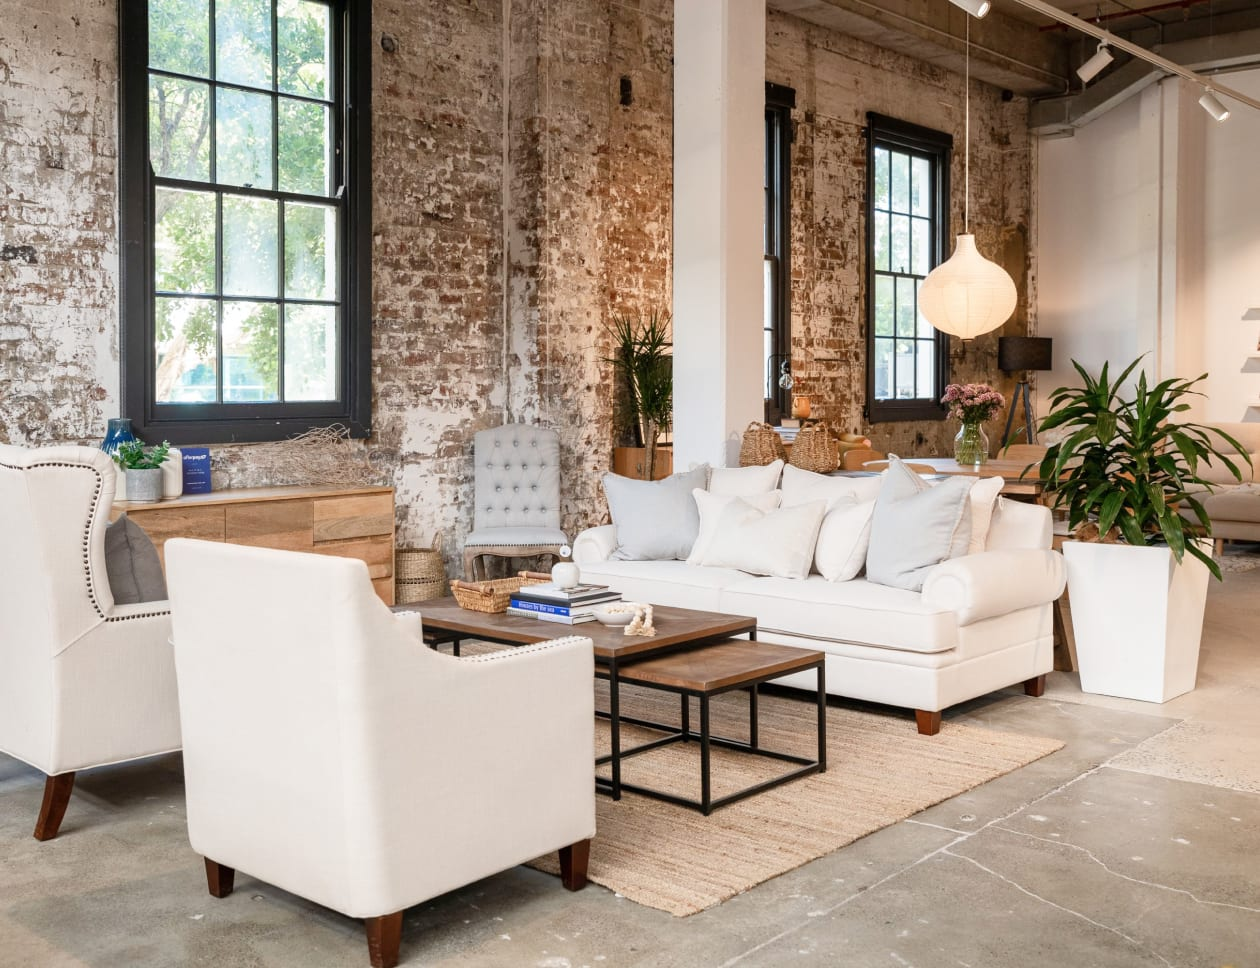 How To Choose The Right Furniture As A Better Investment?